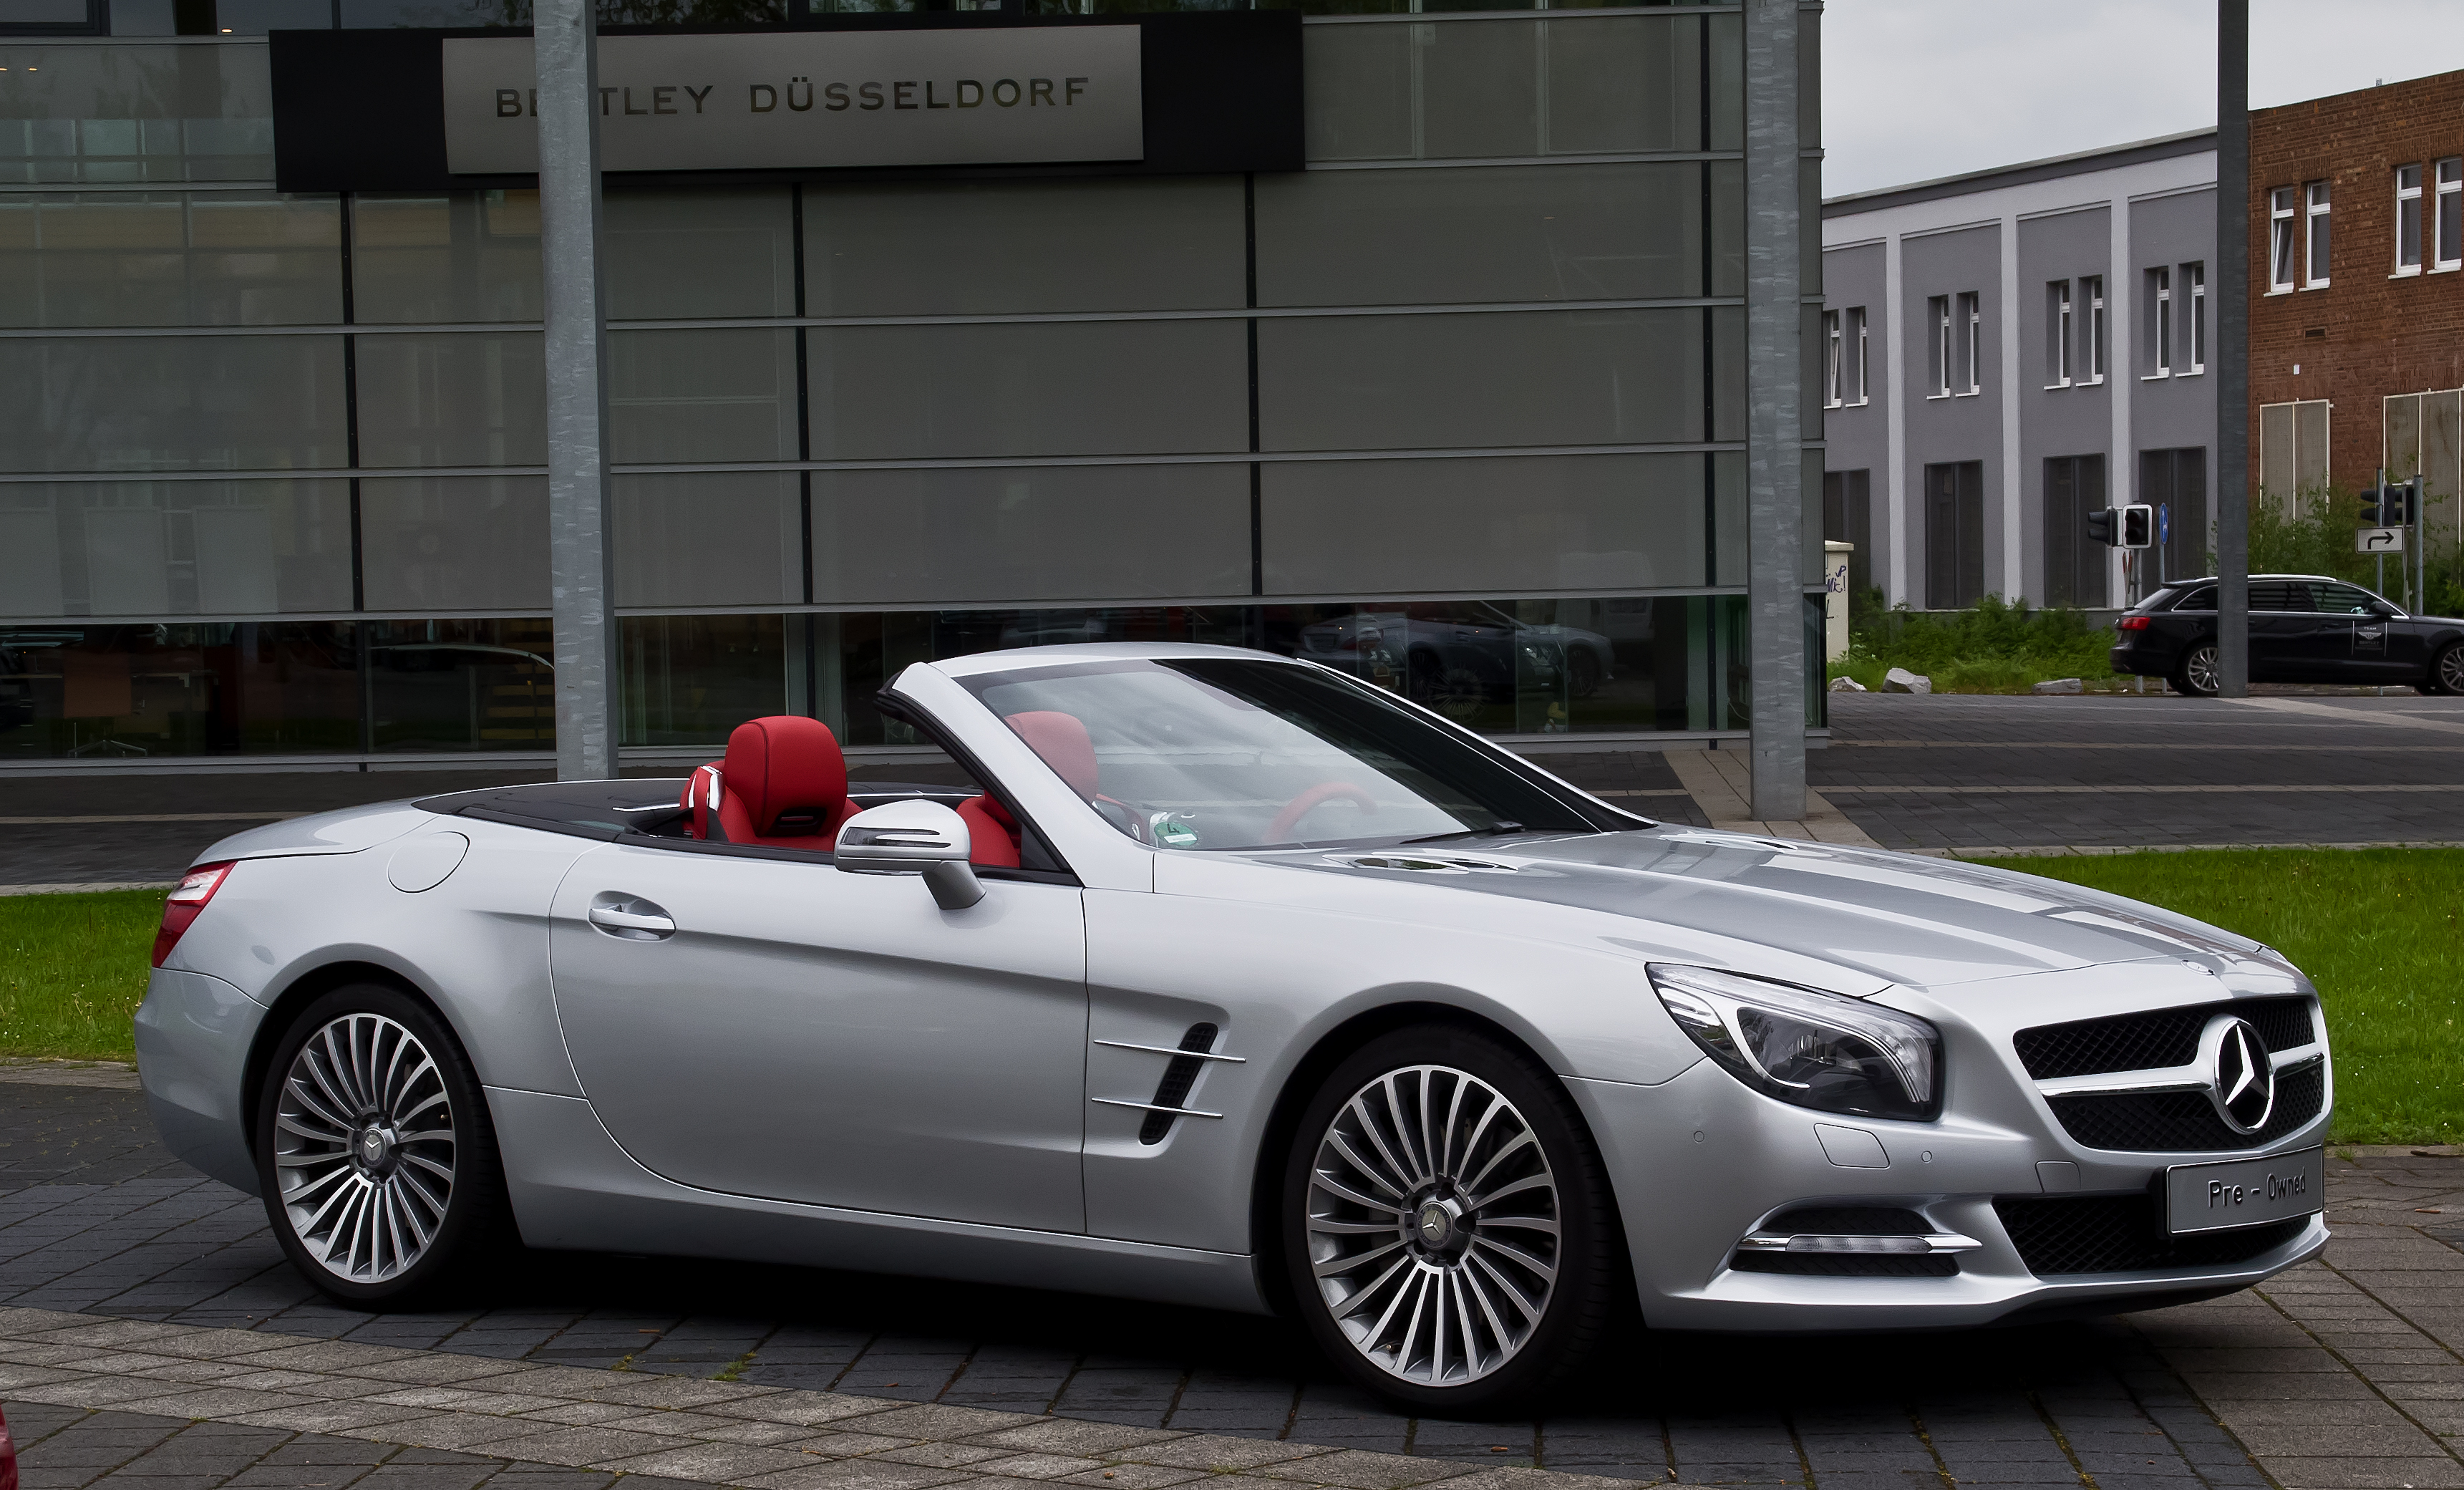 2016 Mercedes Benz Gt Amg Gets Rendered together with File Mercedes Benz SL 350  R 231   E2 80 93 Frontansicht ge C3 B6ff   2   22  Mai 2013  D C3 BCsseldorf in addition Mercedes Benz Sl550 in addition Mercedes Abc Drive Carefully blogspot together with 2014 Mercedes Benz Sl550 Prestige Performance And  fort. on 2013 mercedes benz sl550